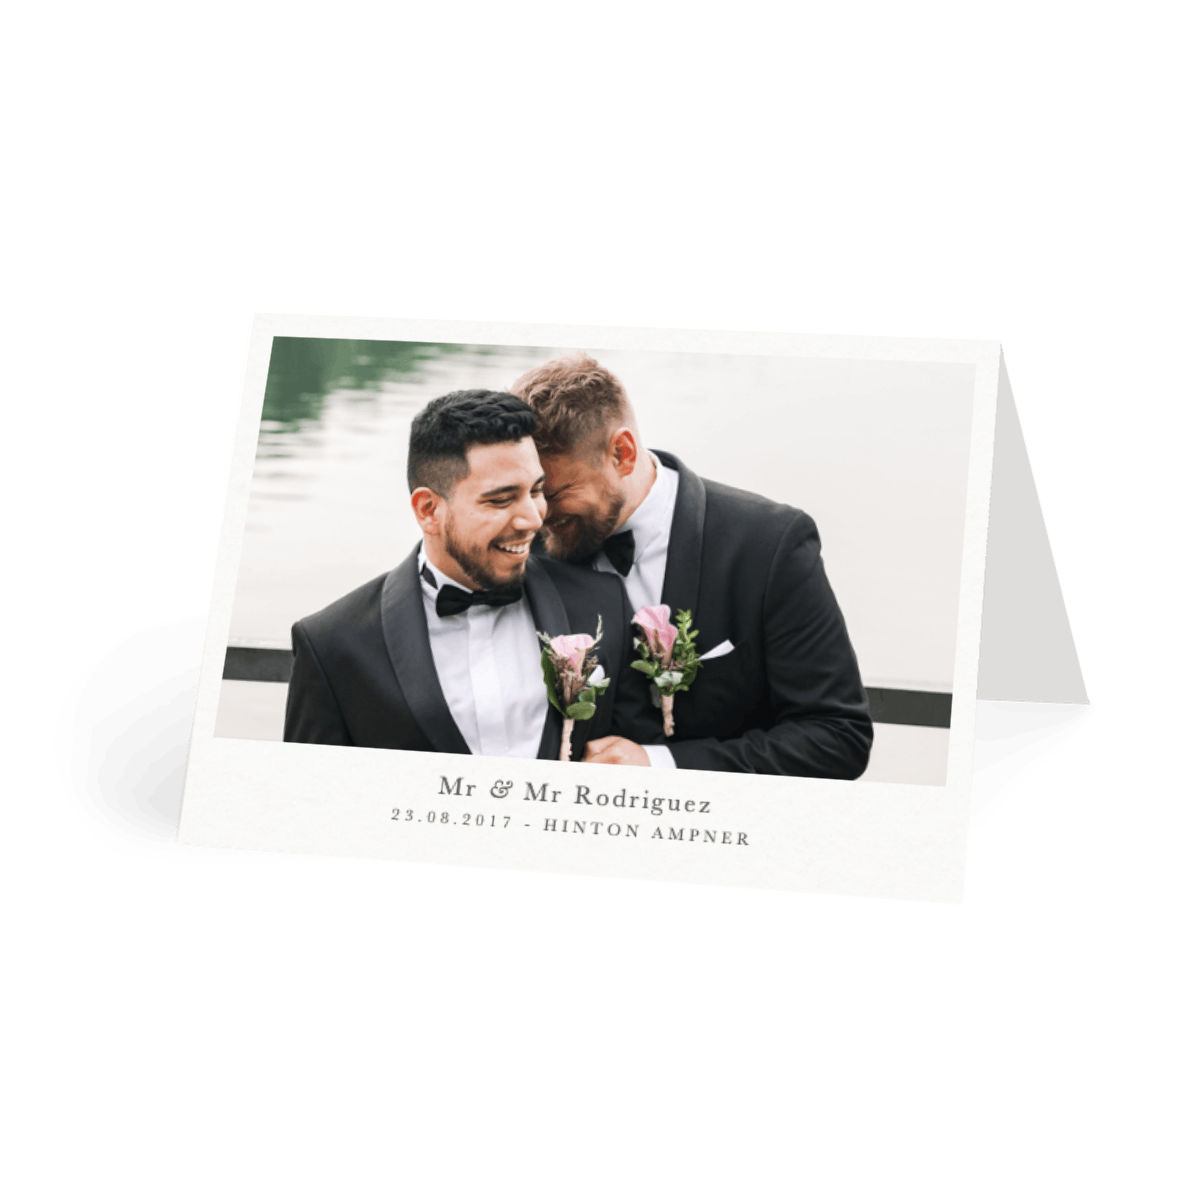 Https%3a%2f%2fwww.papier.com%2fproduct image%2f17547%2f14%2flandscape wedding 4597 vorderseite 1551280048.png?ixlib=rb 1.1